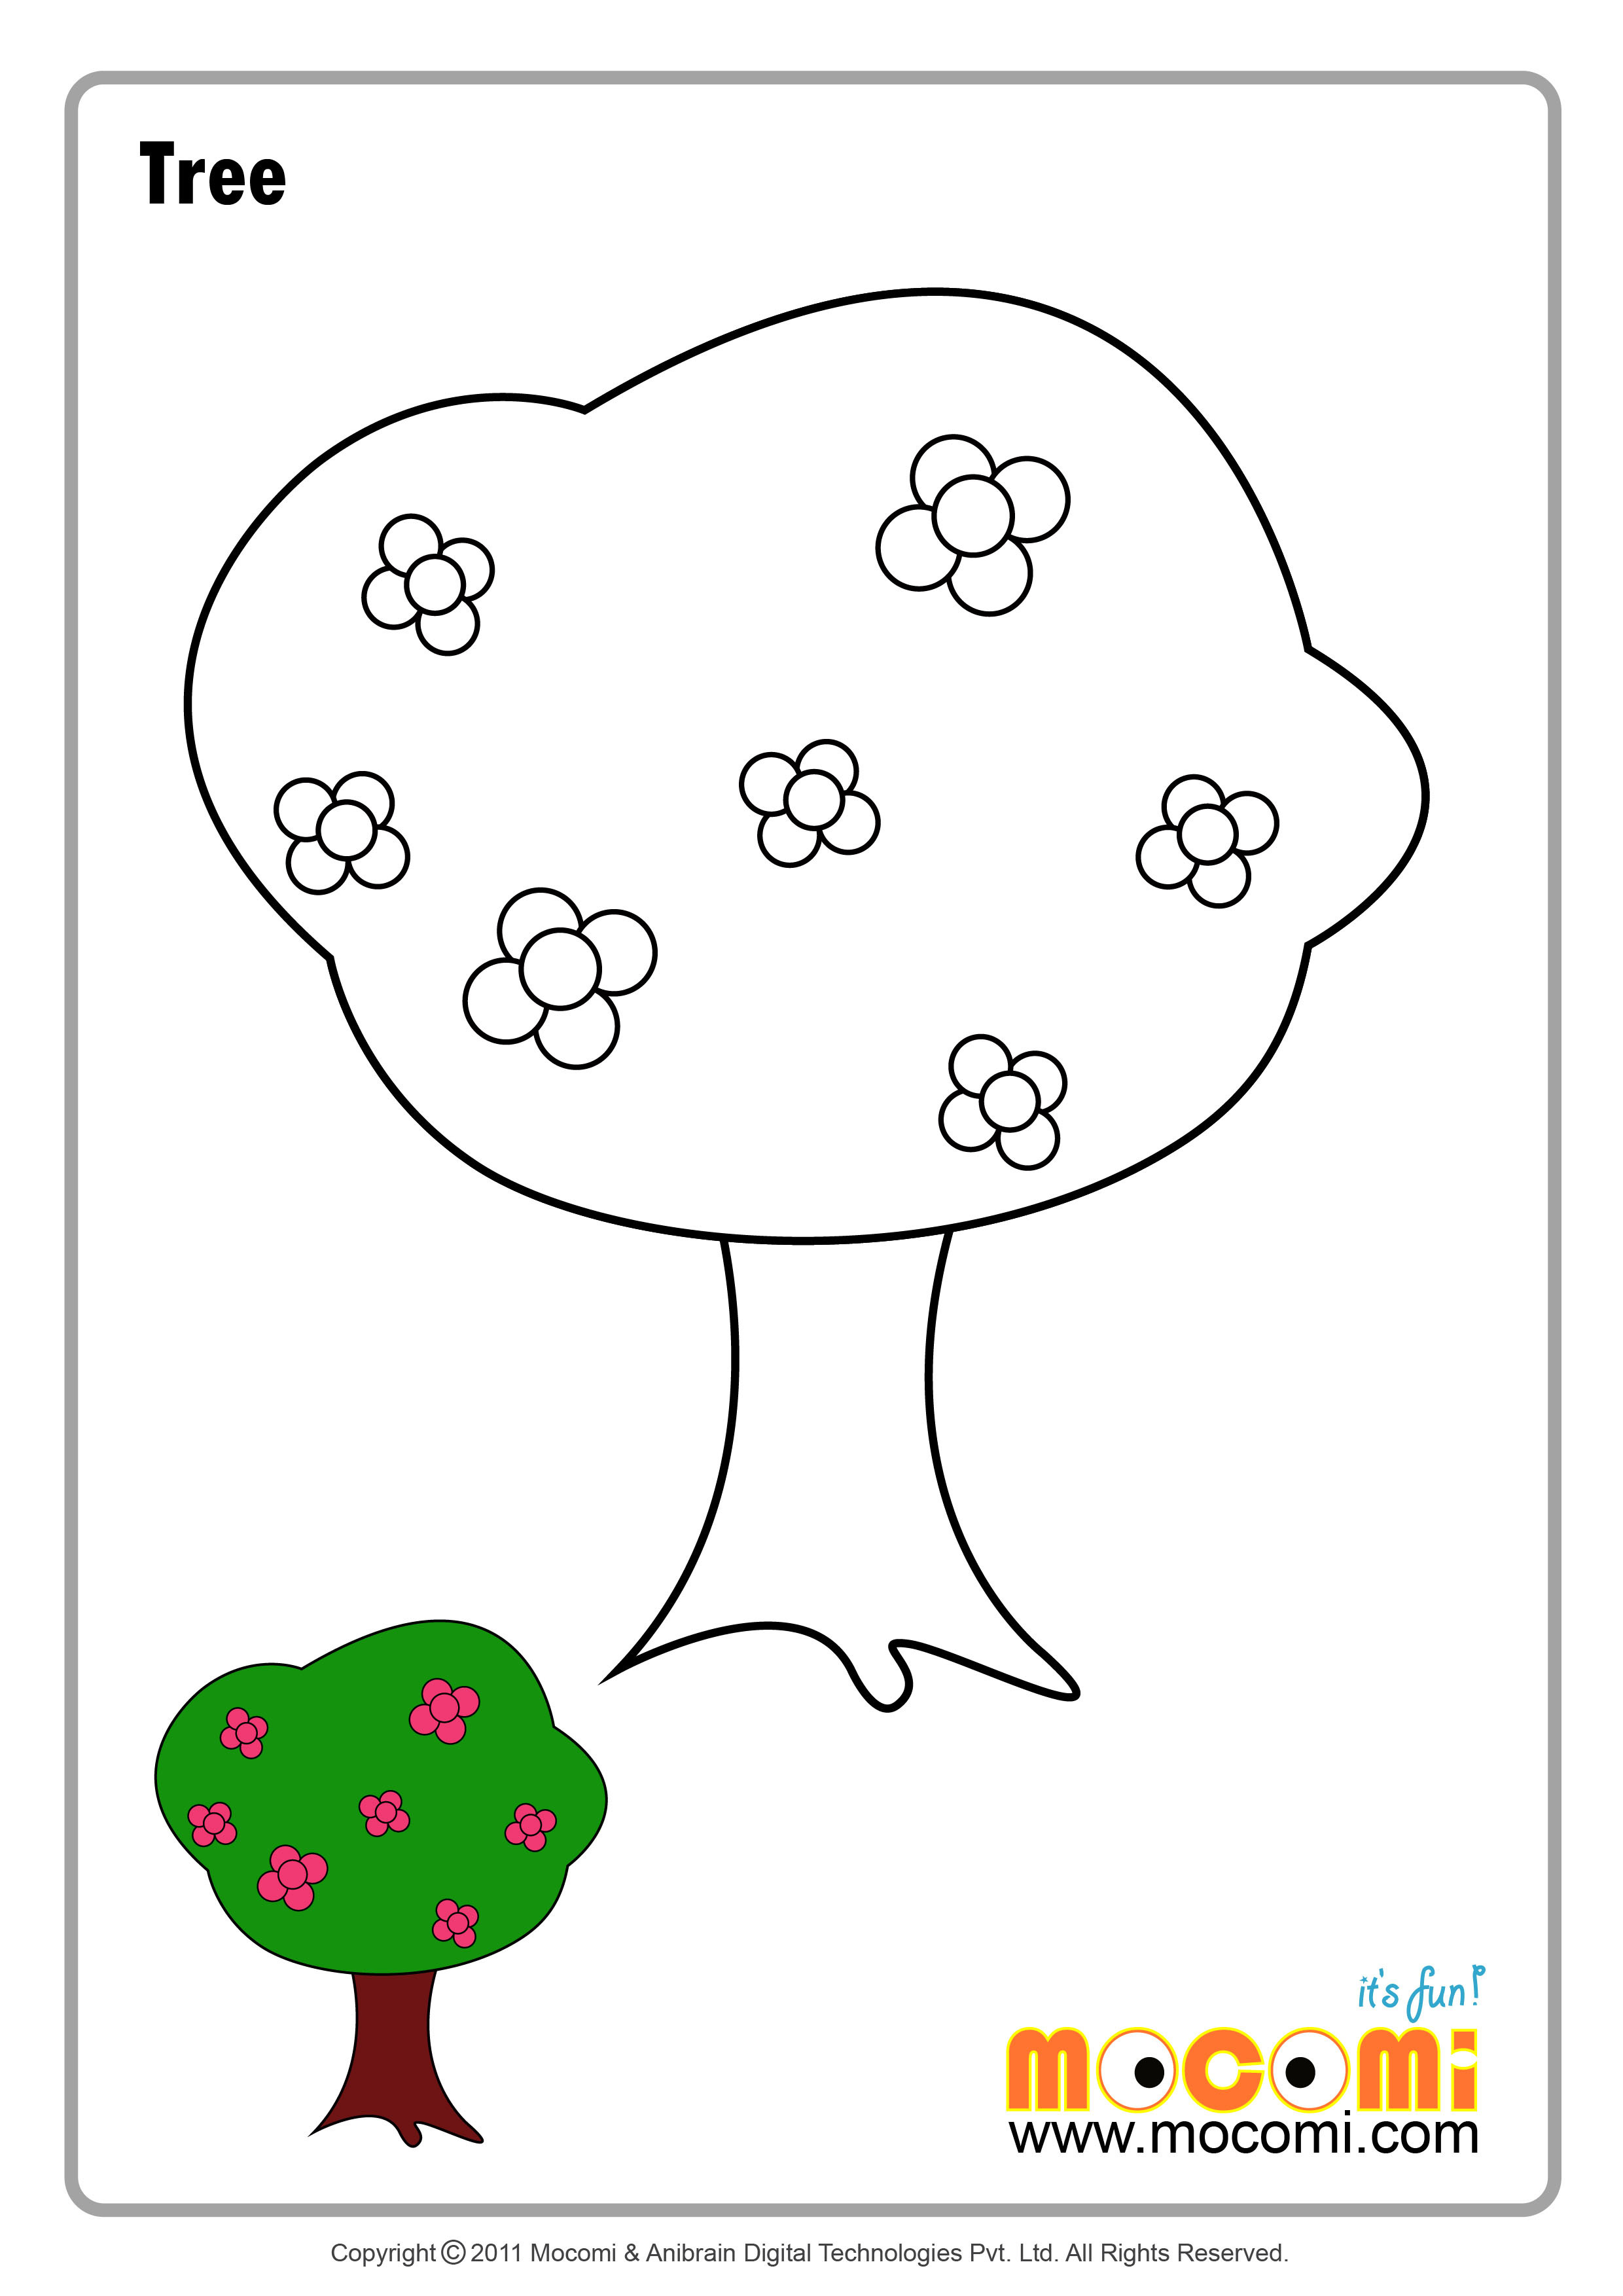 Tree 2 – Colouring Page